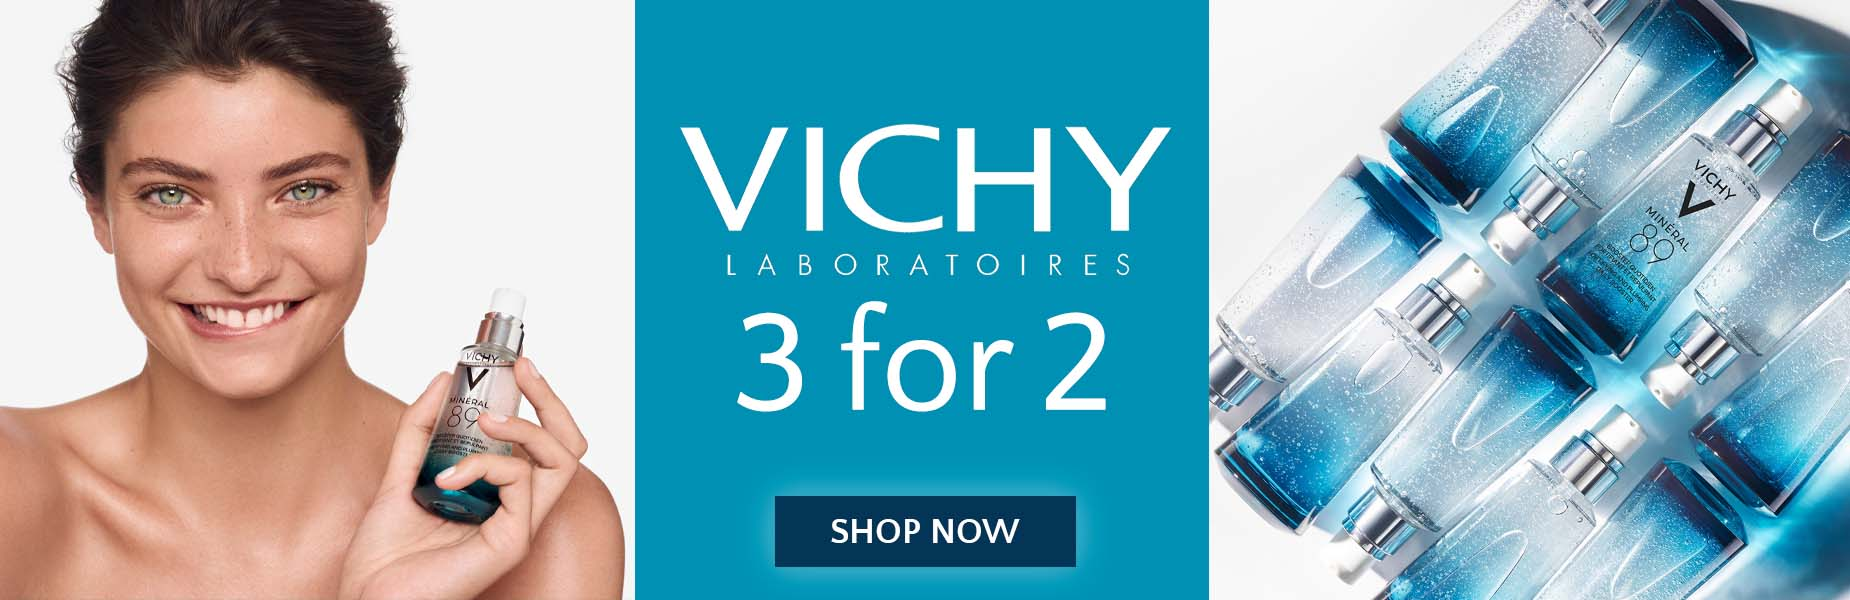 Vichy 3 for 2